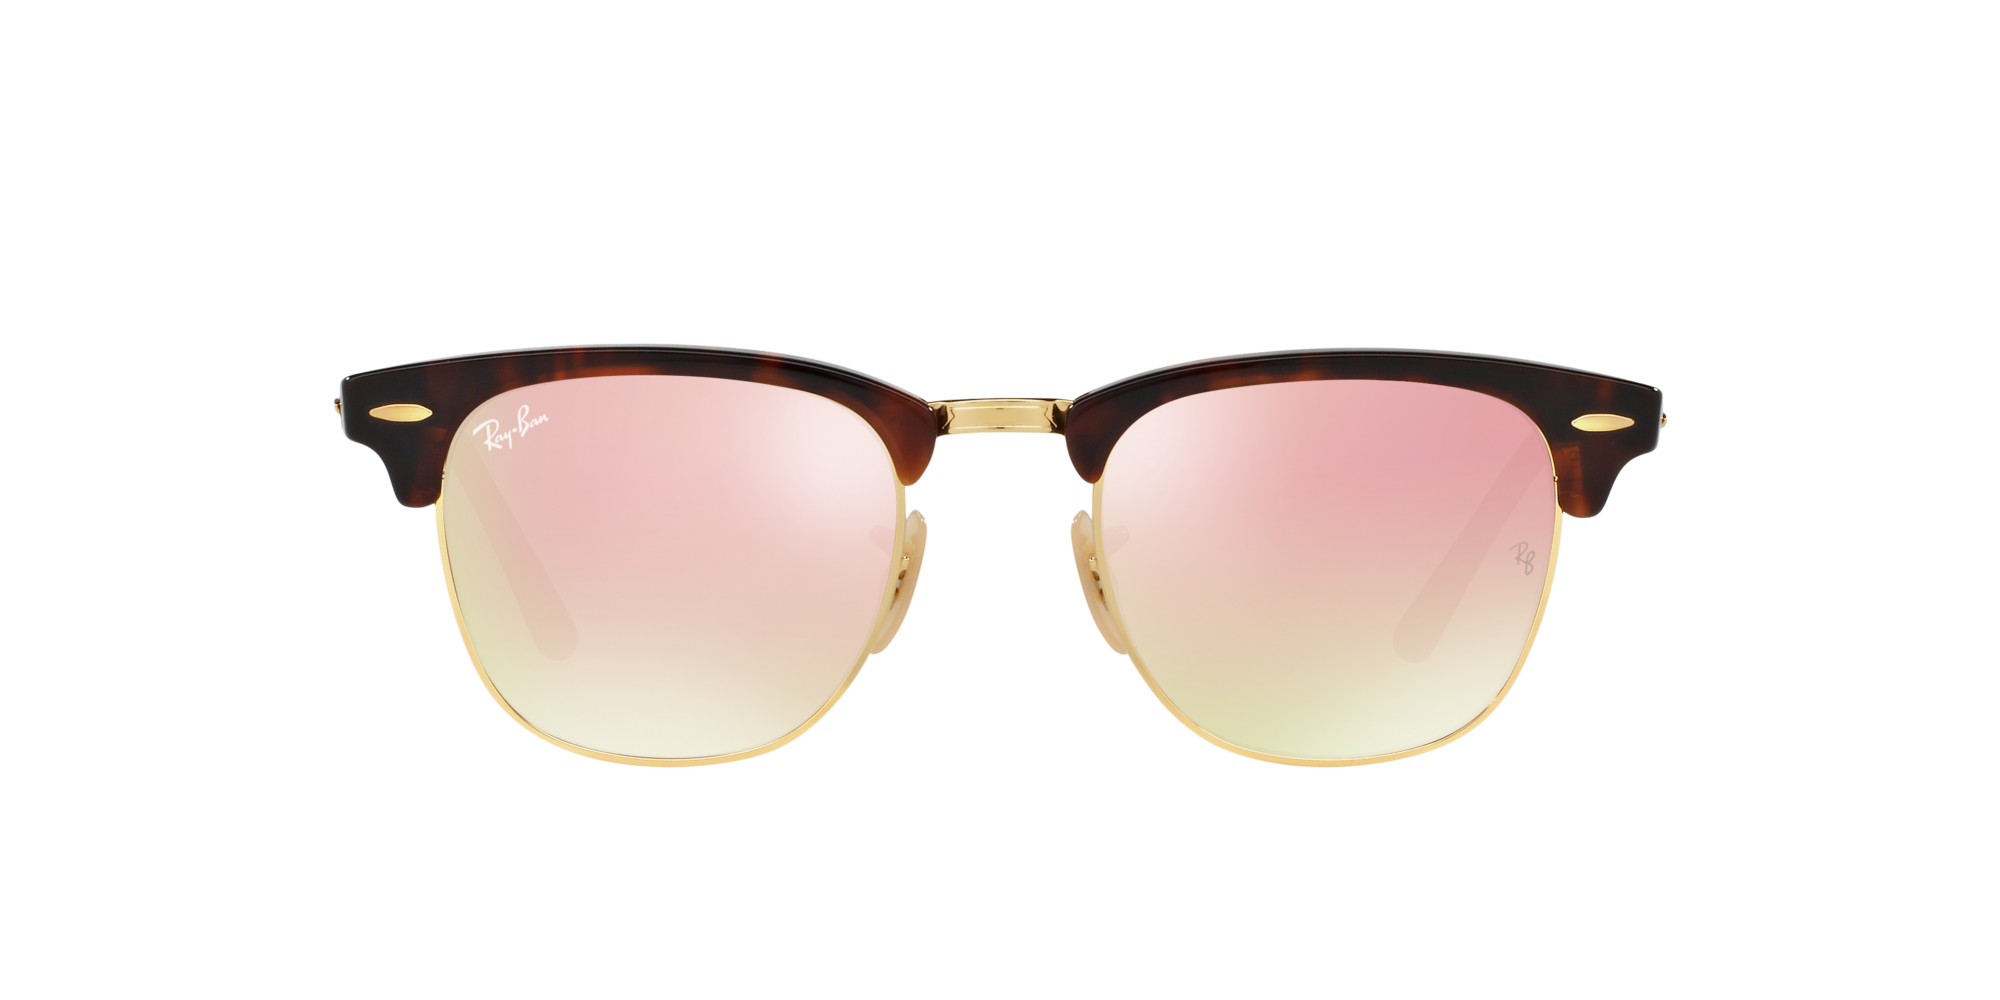 RAY-BAN CLUBMASTER RB 3016 990/7O-360